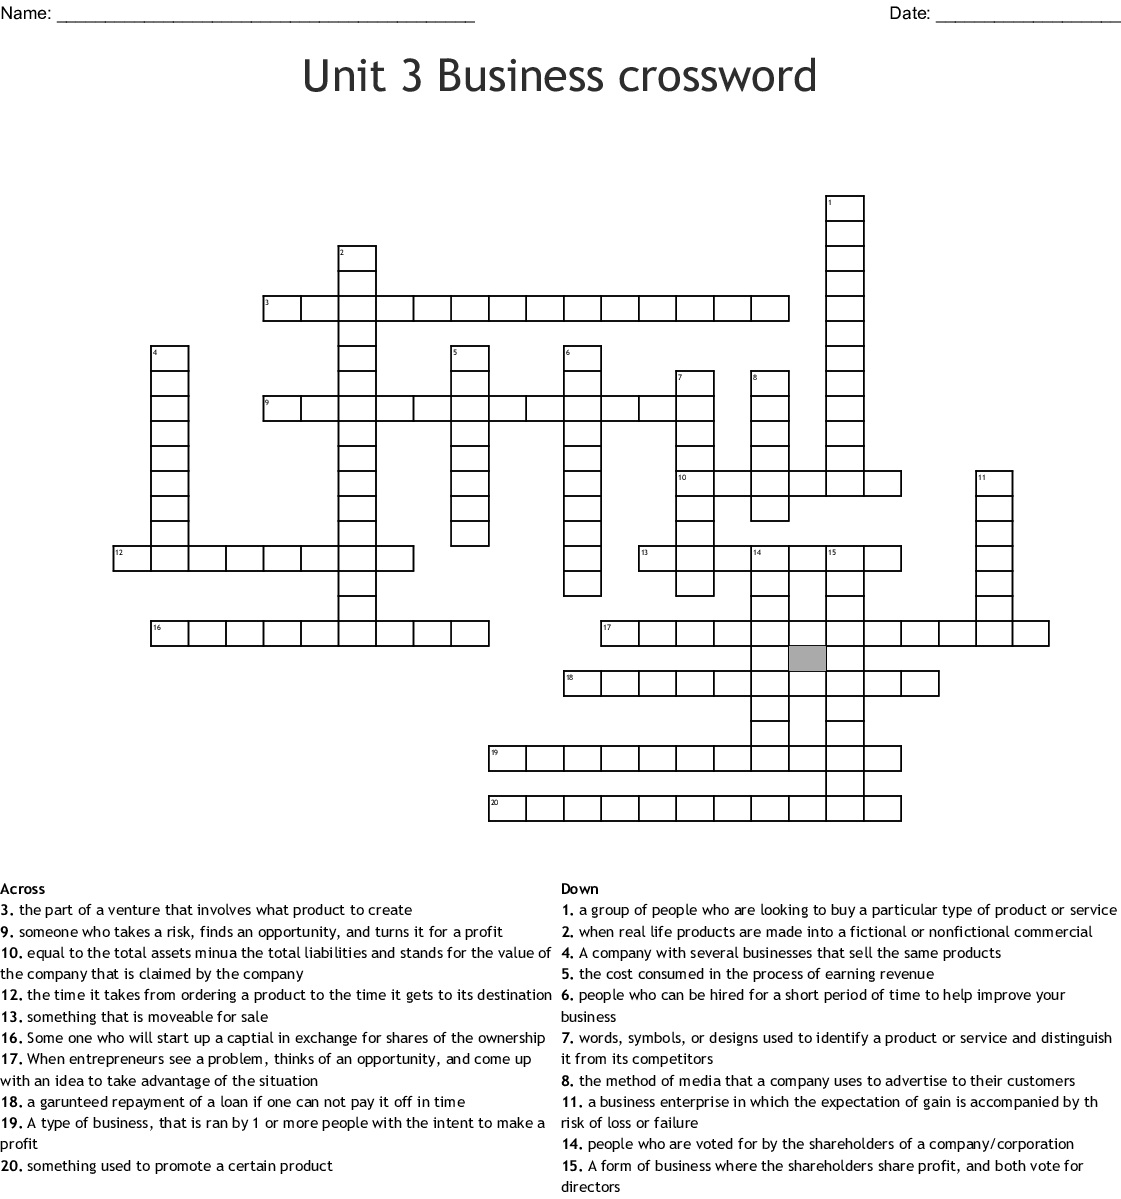 Unit 3 Business Crossword